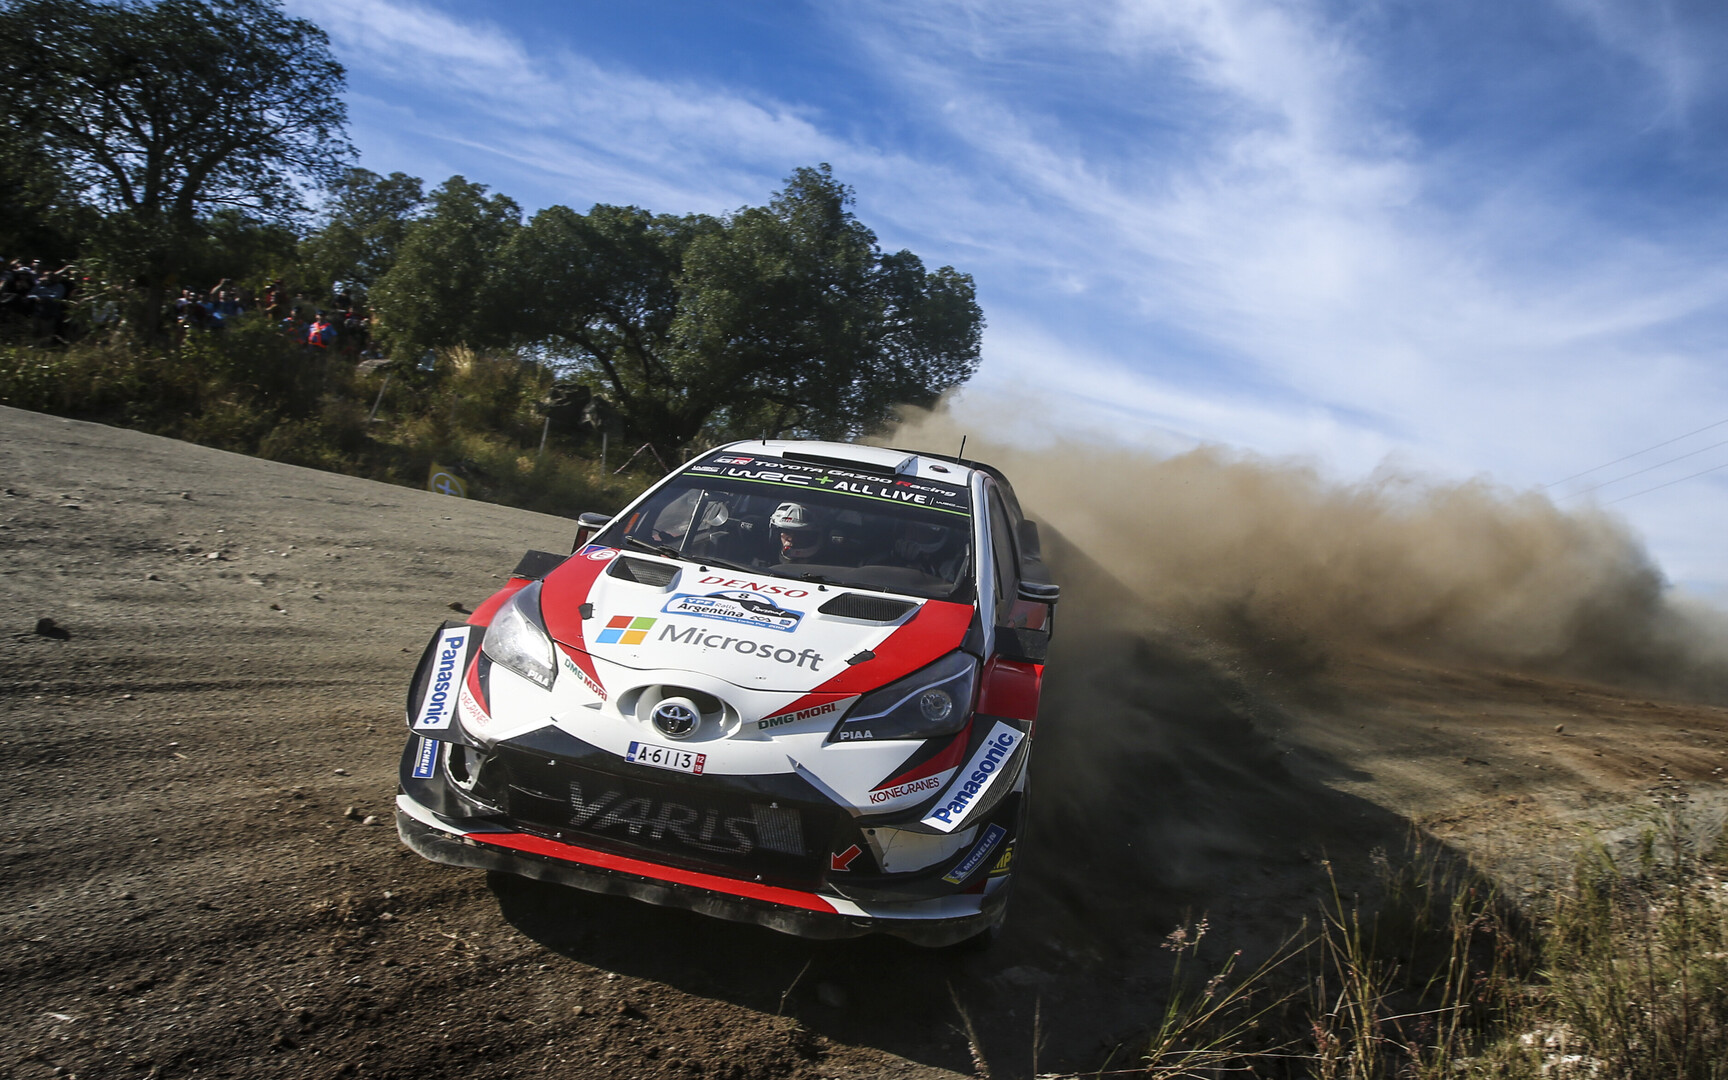 t nak wins 2018 rally argentina remains wrc third with 72 points news err. Black Bedroom Furniture Sets. Home Design Ideas